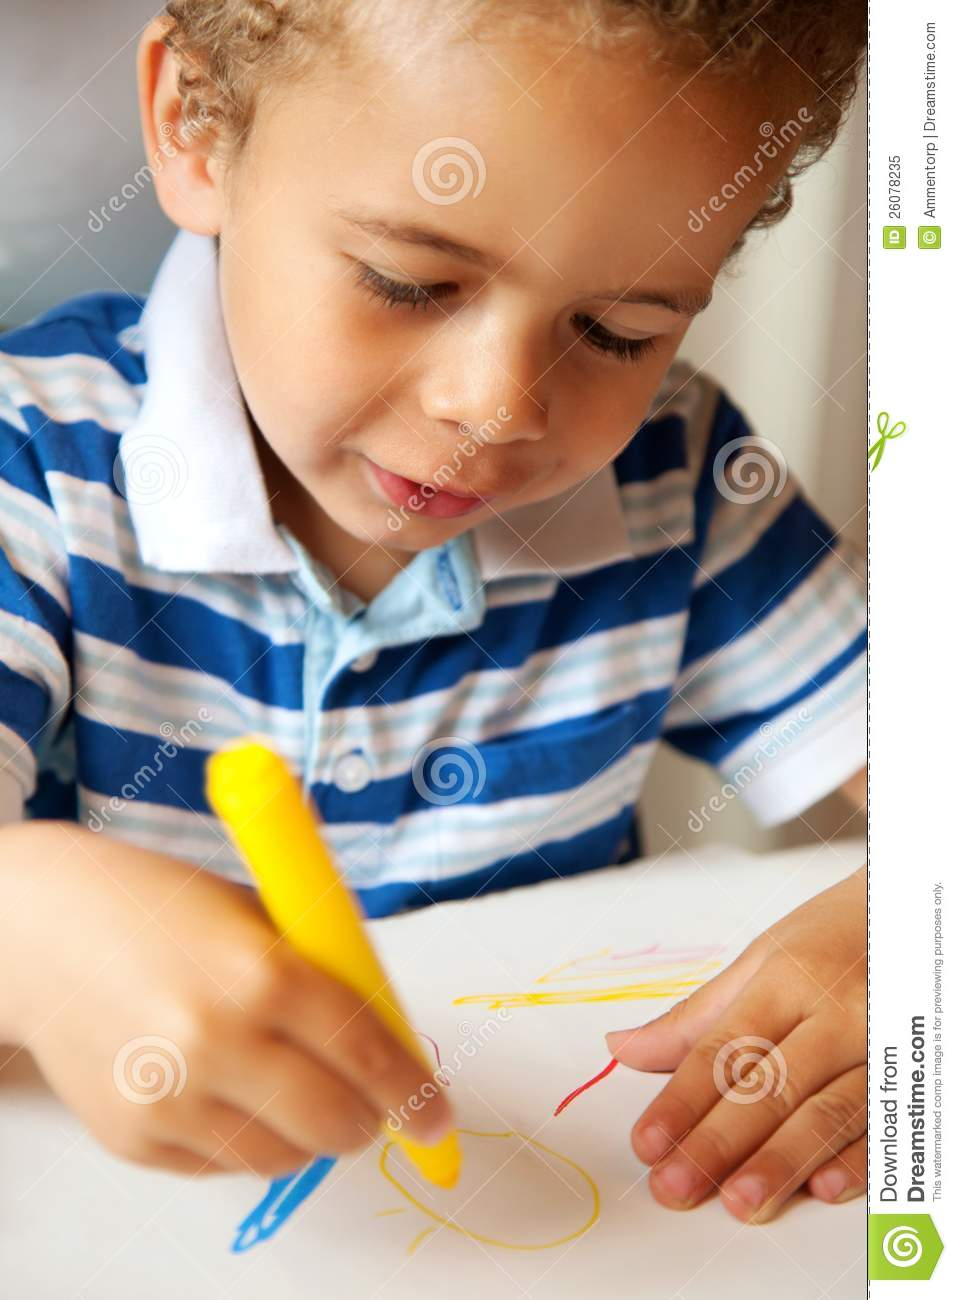 Young Child Holding A Yellow Crayon Royalty Free Stock